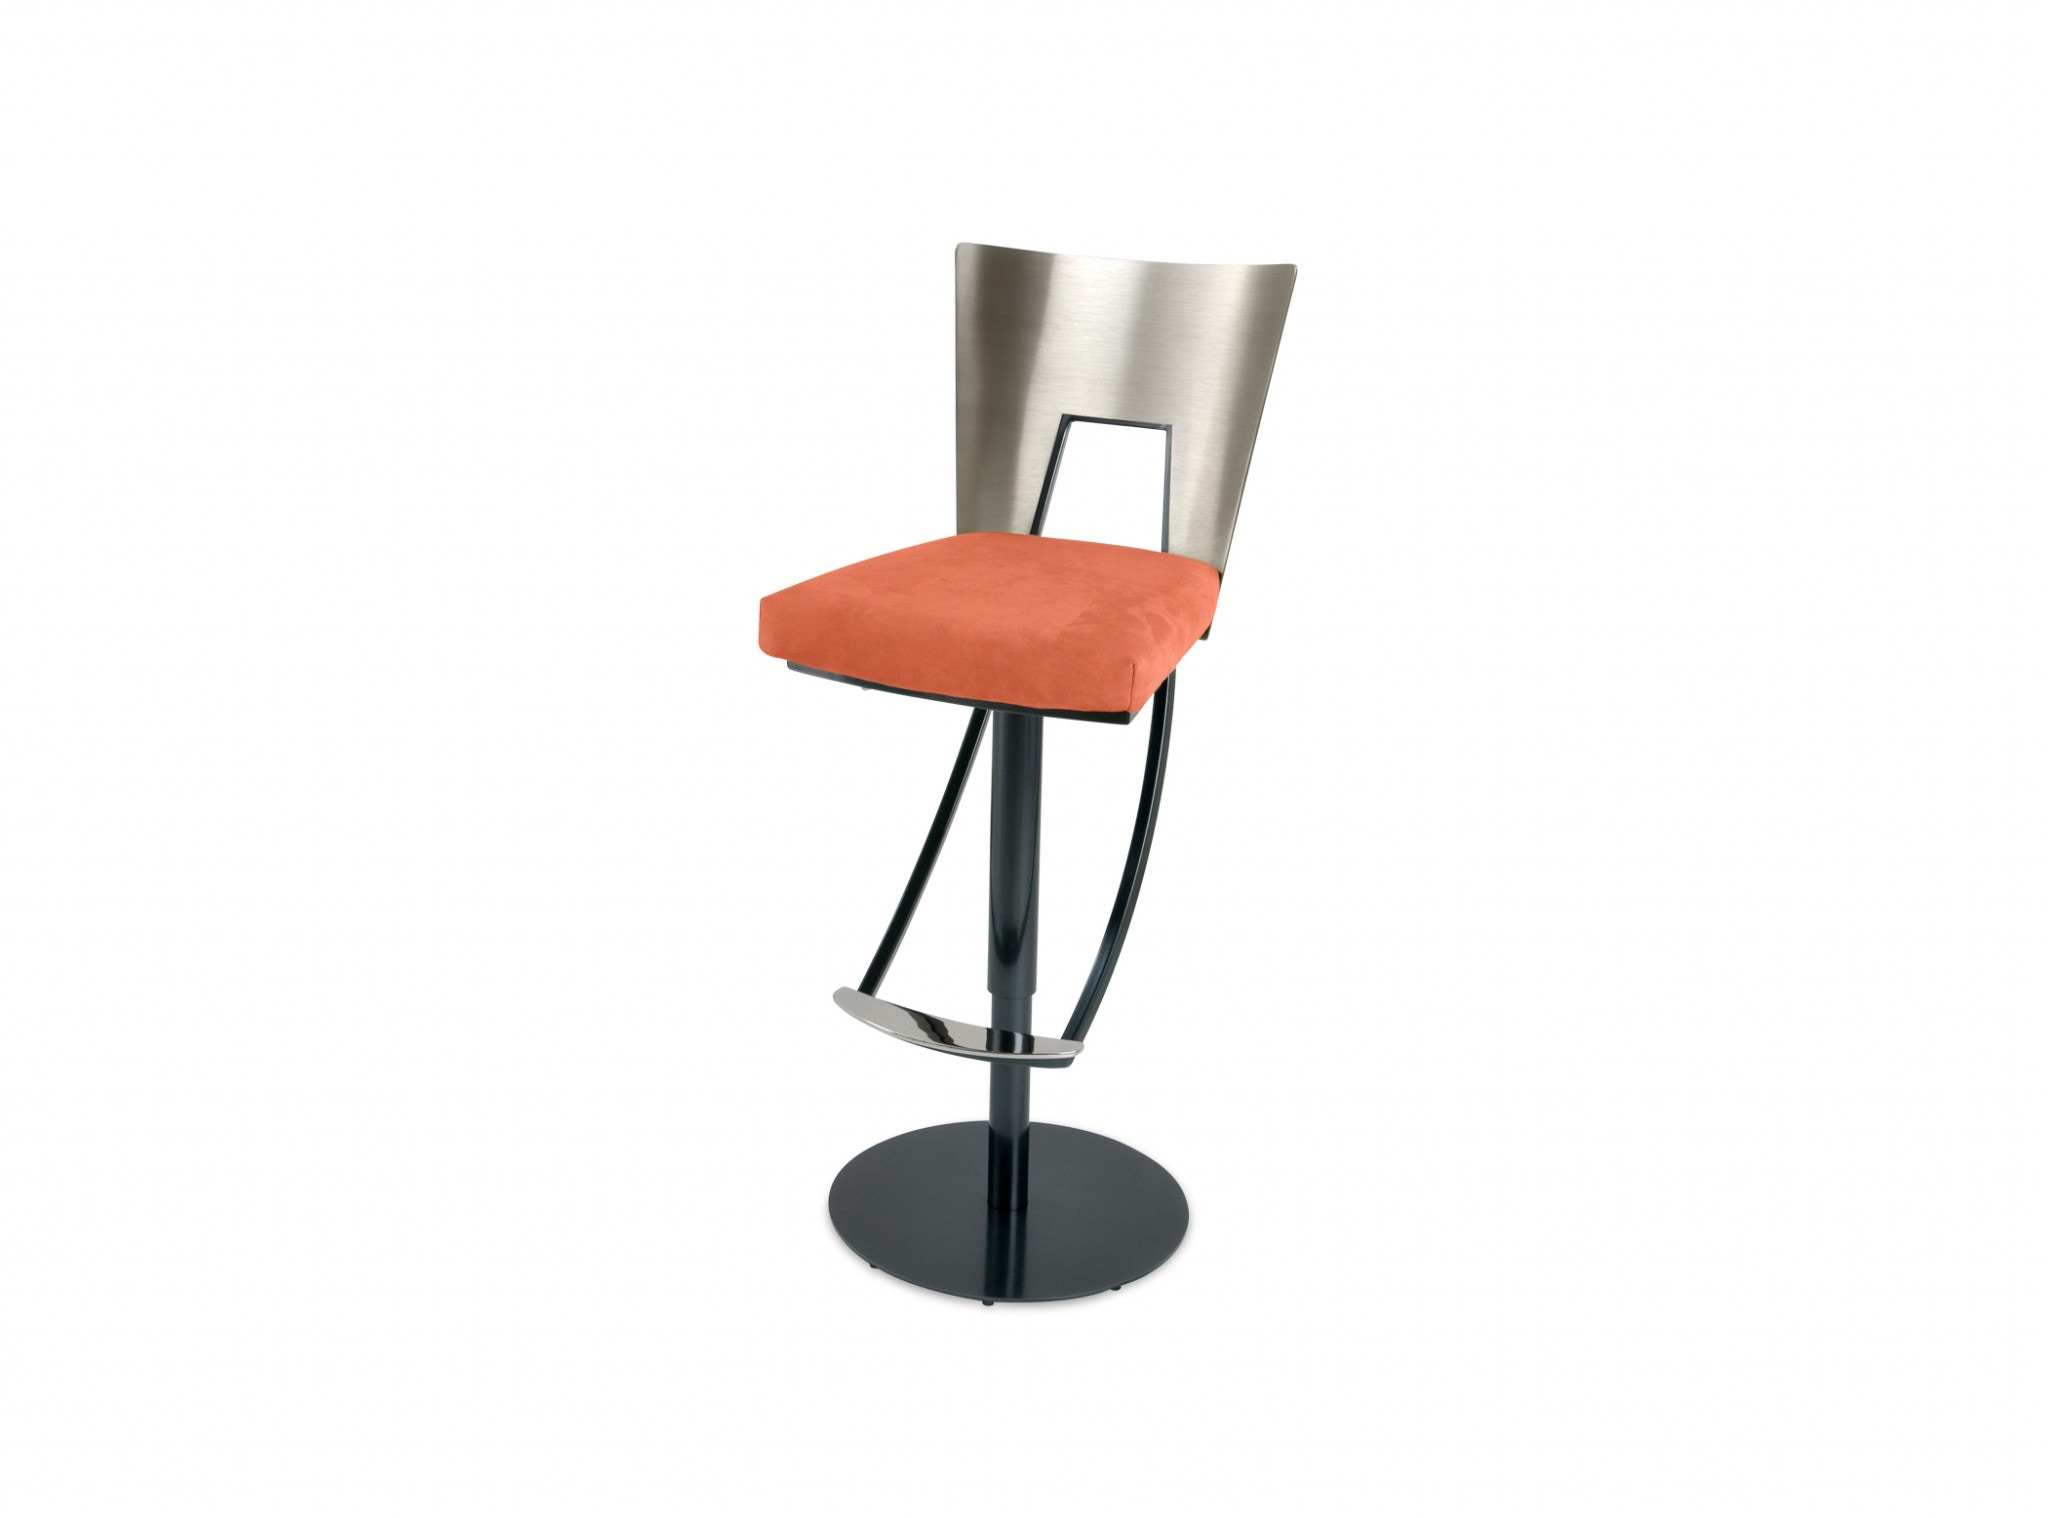 lift chairs edmonton alberta memory foam chair pads elite modern bar and game room regal hydraulic stool 421b